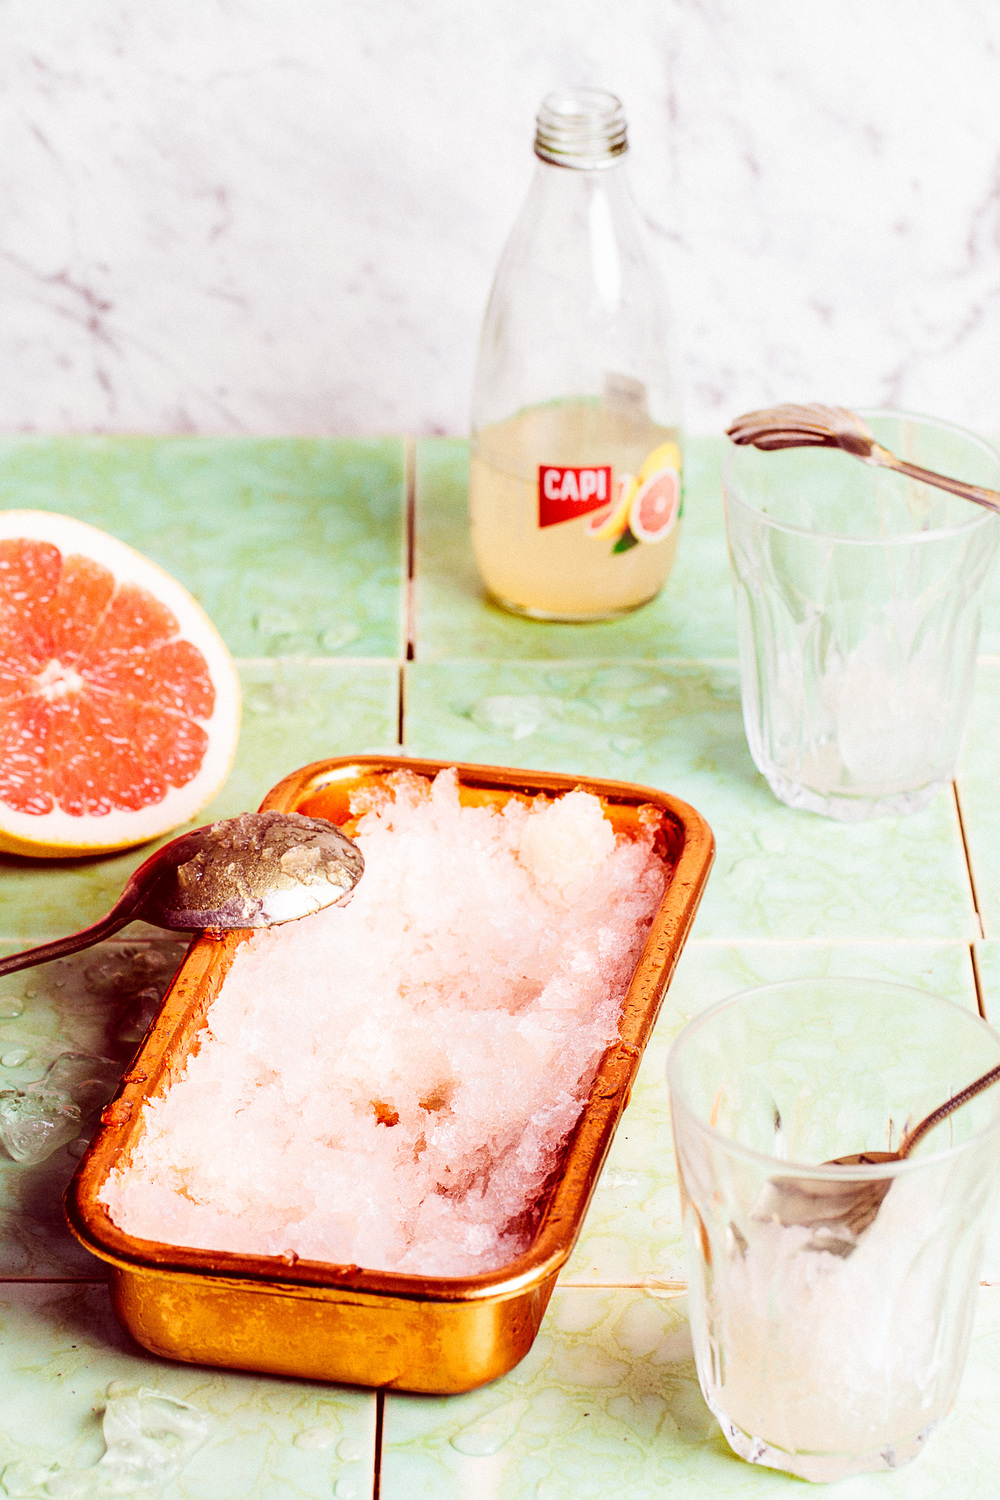 Grapefruit Granita,  CAPI  grapefruit sparkling soda. Recipe and styling by   Cle-ann  , photo by   Hugh Adams  .